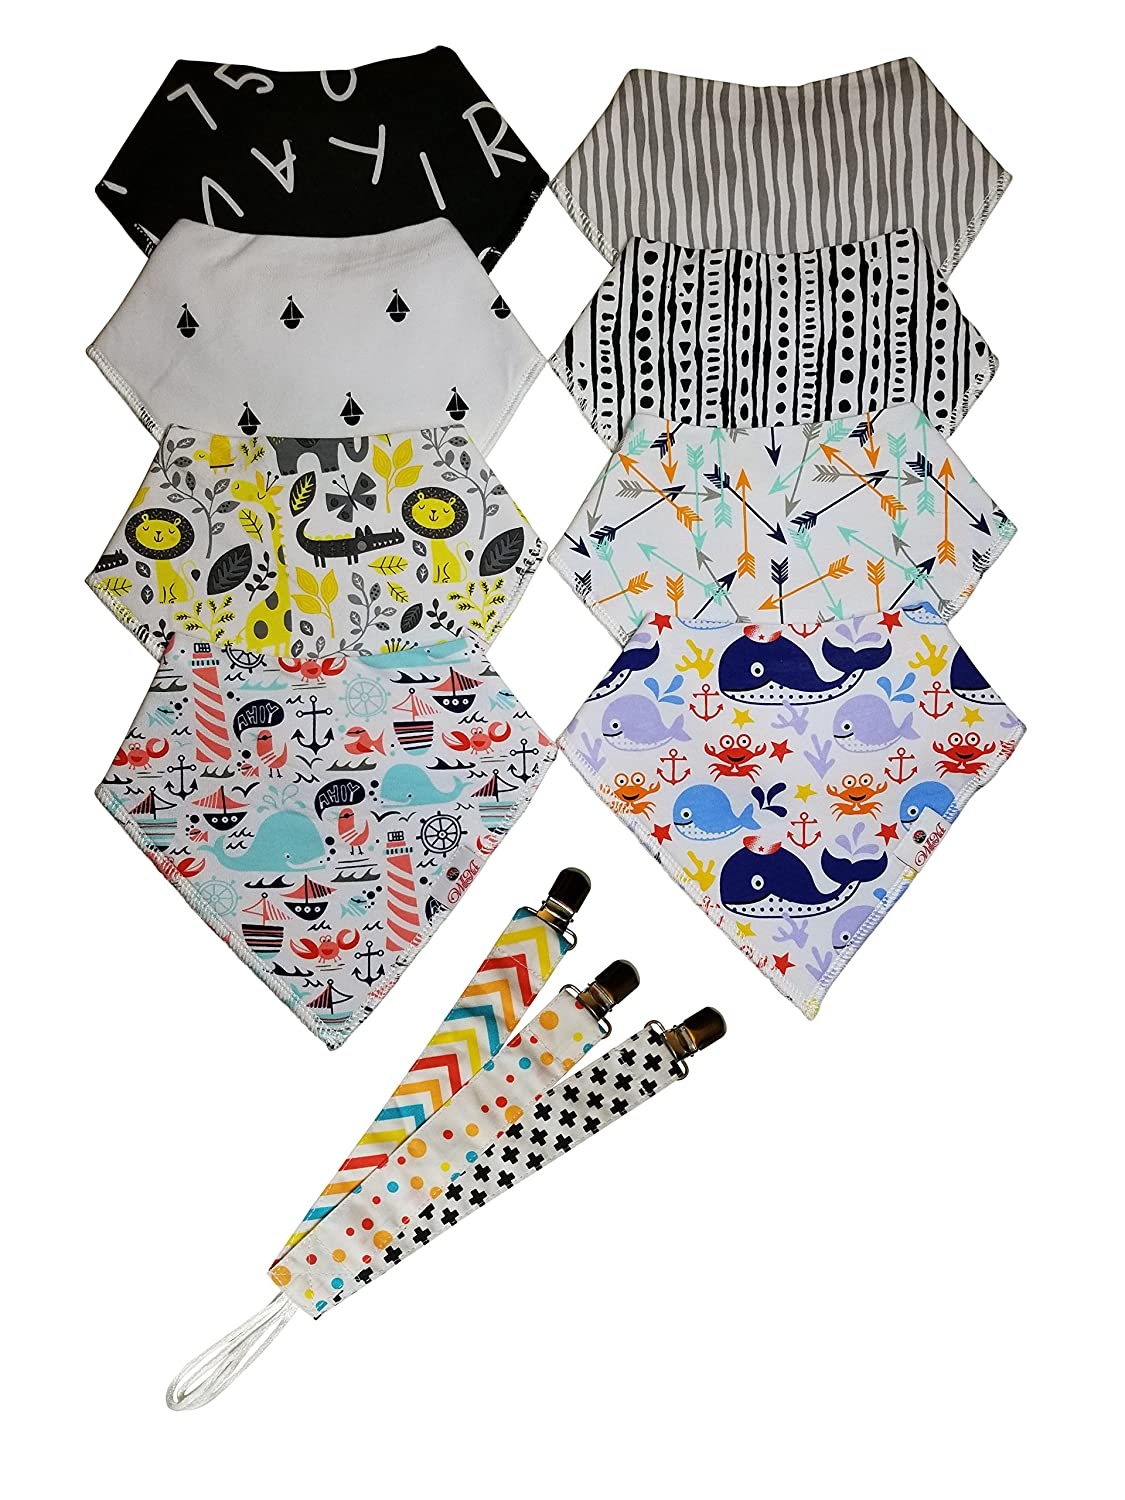 Baby Bandana Drool Bibs for Infant, Toddler - 8 Pack